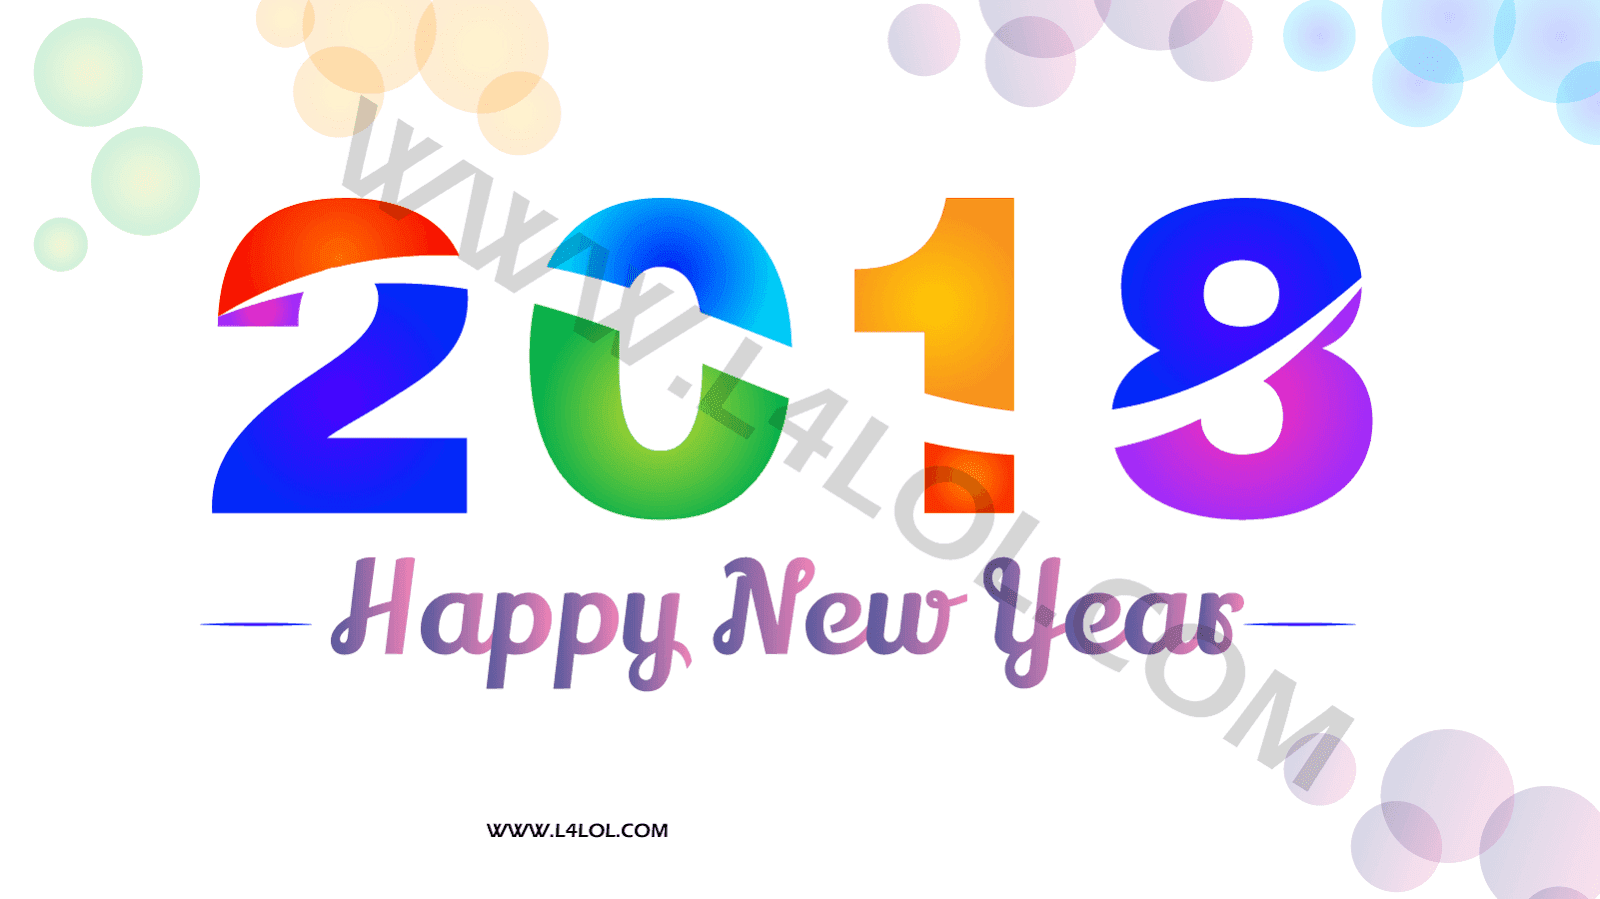 Happy New Year 2018 Pictures Hd Images